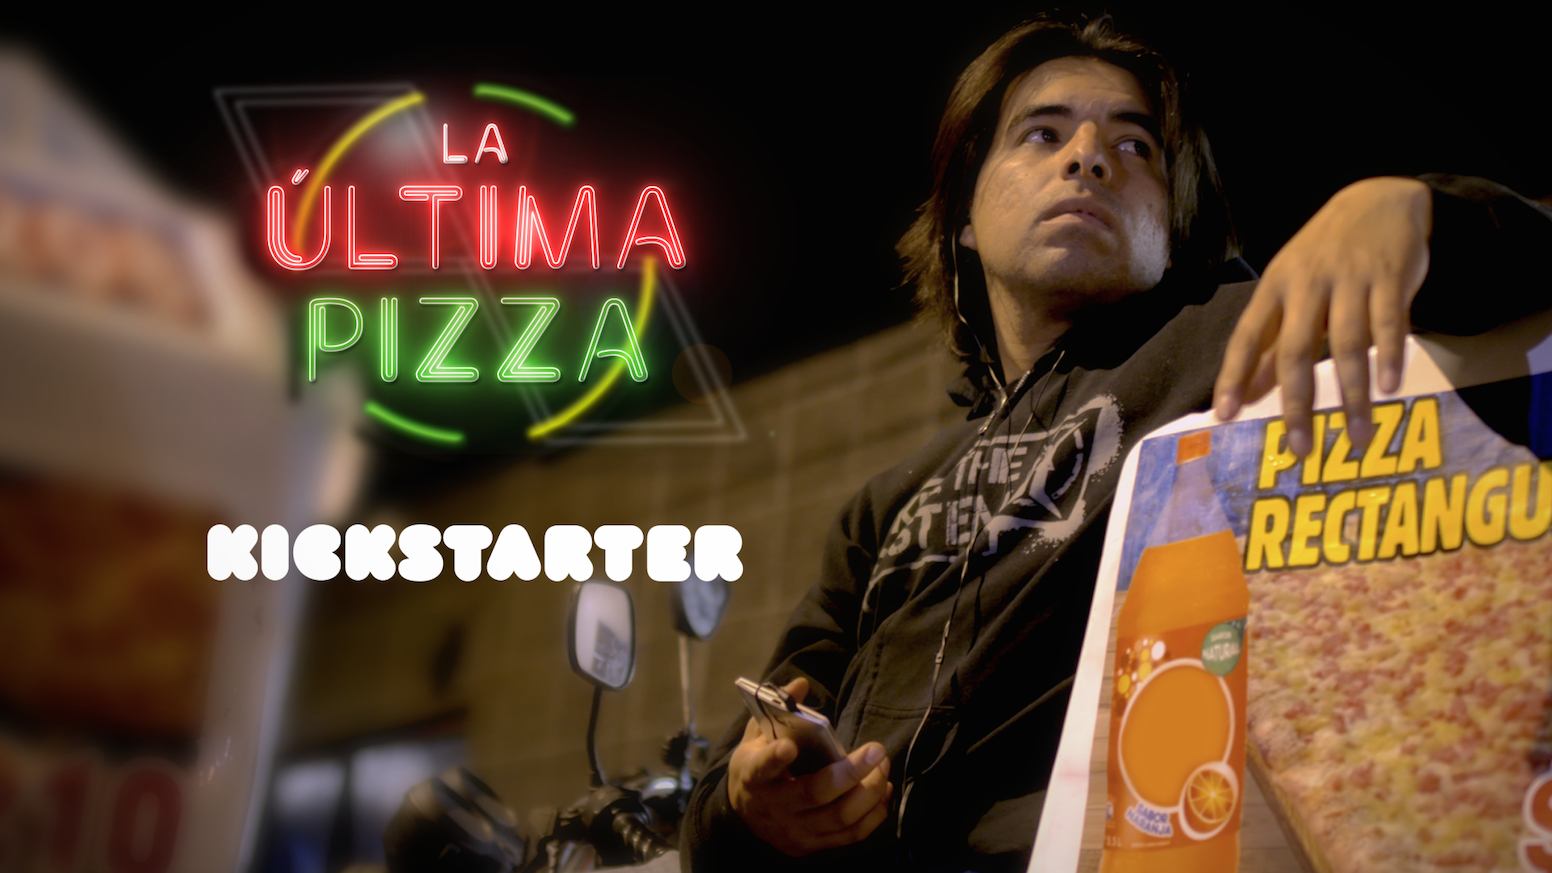 La última pizza / The last pizza is the top crowdfunding project launched today. La última pizza / The last pizza raised over $175650 from 24 backers. Other top projects include The Art of Mitch Foust 2018 Yearbook, Hamlet, el ocaso de Elsinor., Cognitive Behavioural Therapy Anxiety Treatment App...